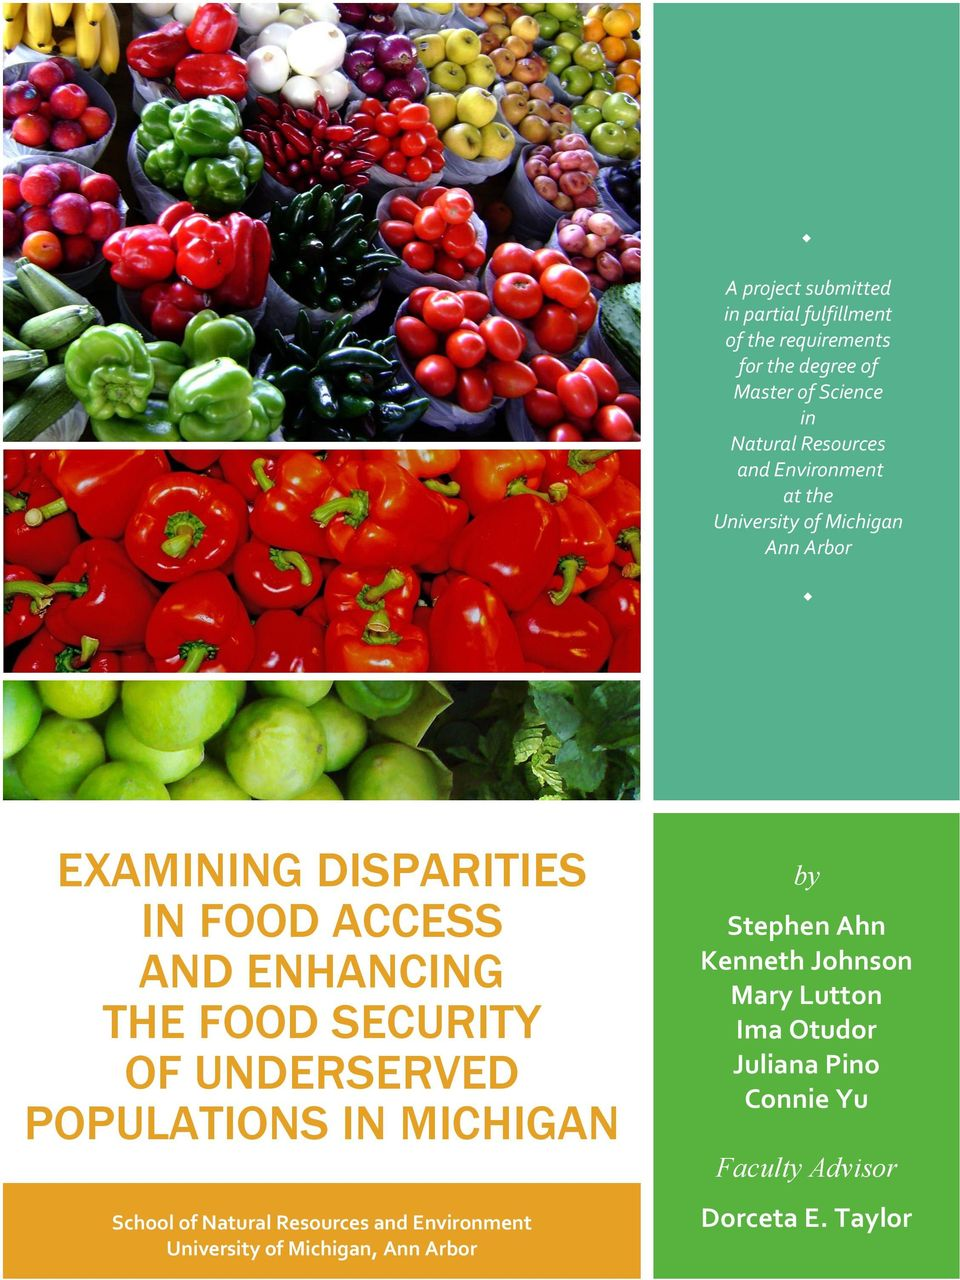 THE FOOD SECURITY OF UNDERSERVED POPULATIONS IN MICHIGAN School of Natural Resources and Environment University of